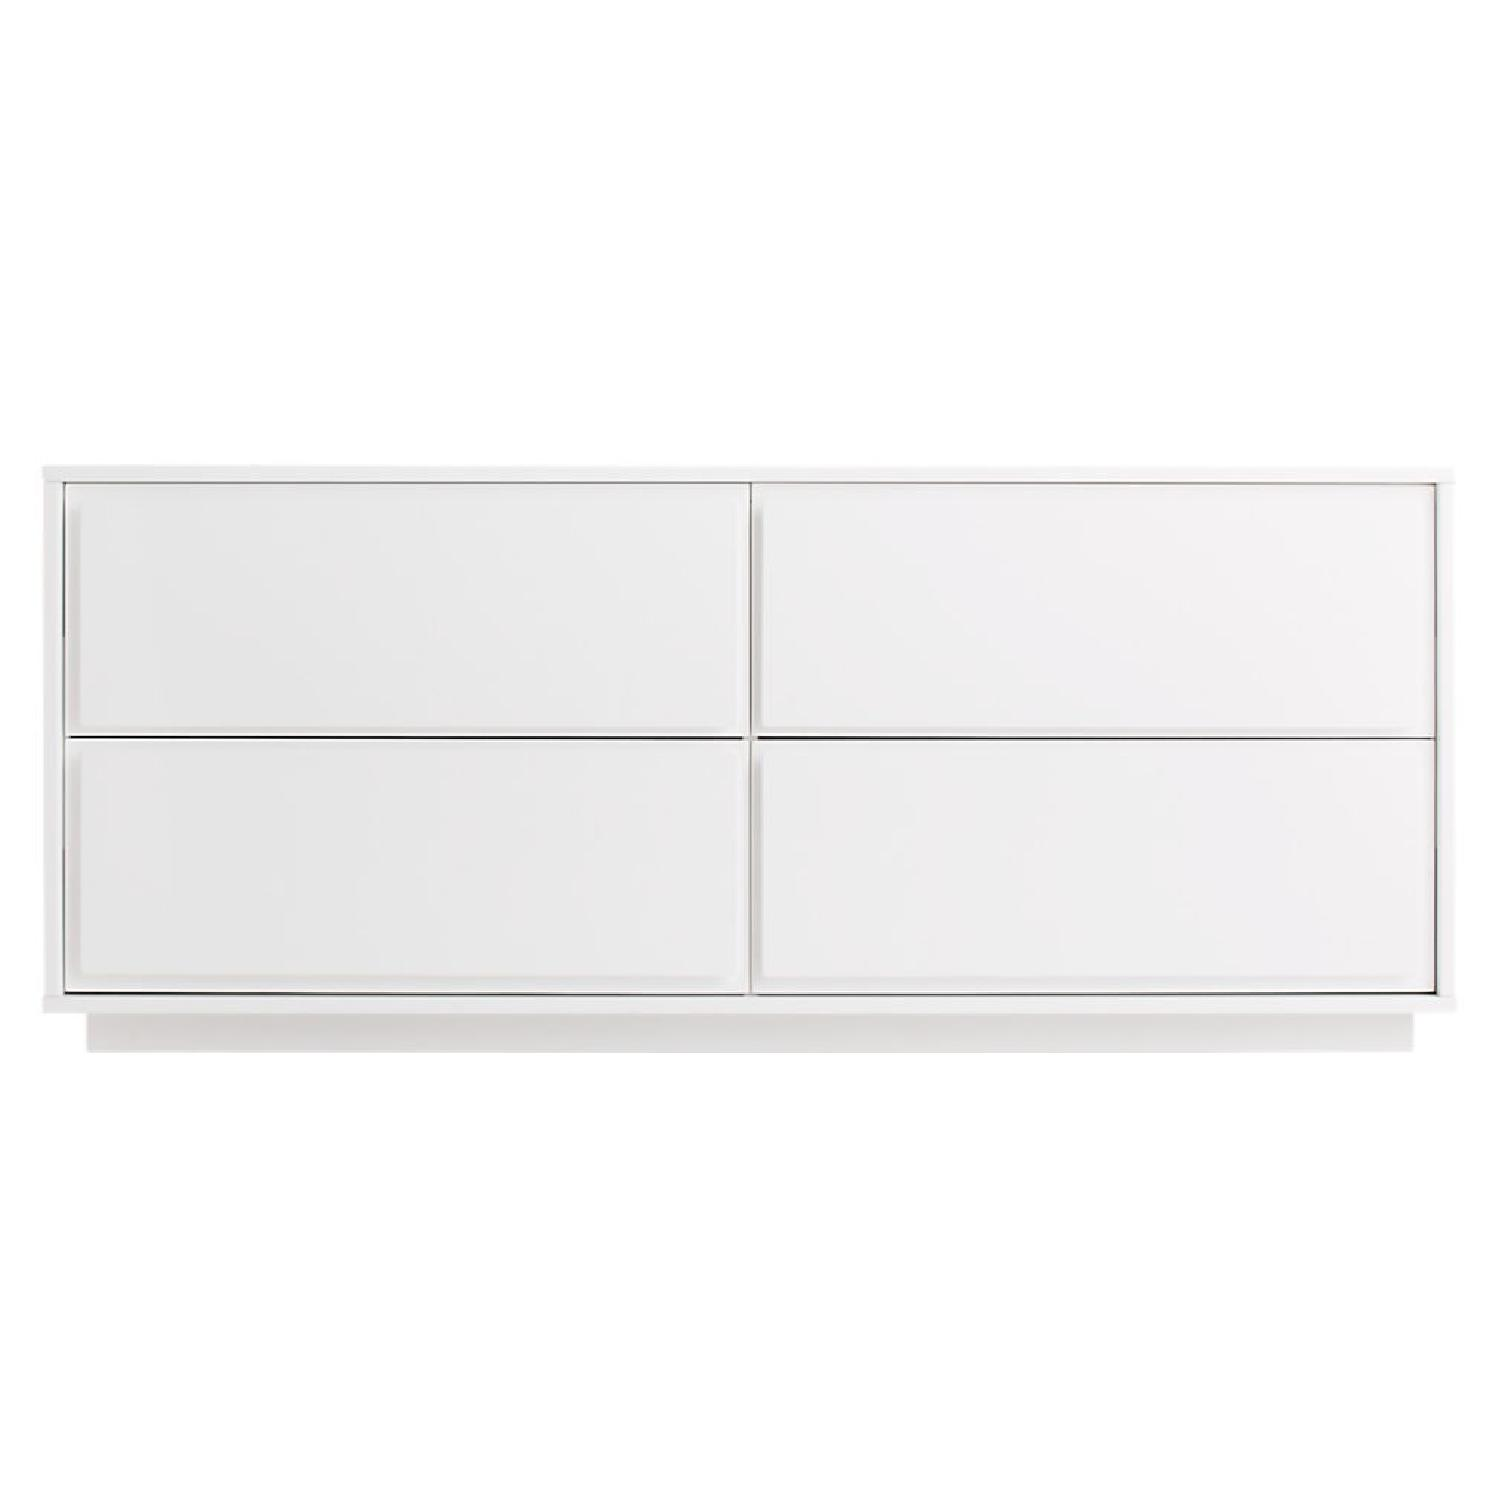 CB2 Gallery White 4 Drawer Low Dresser